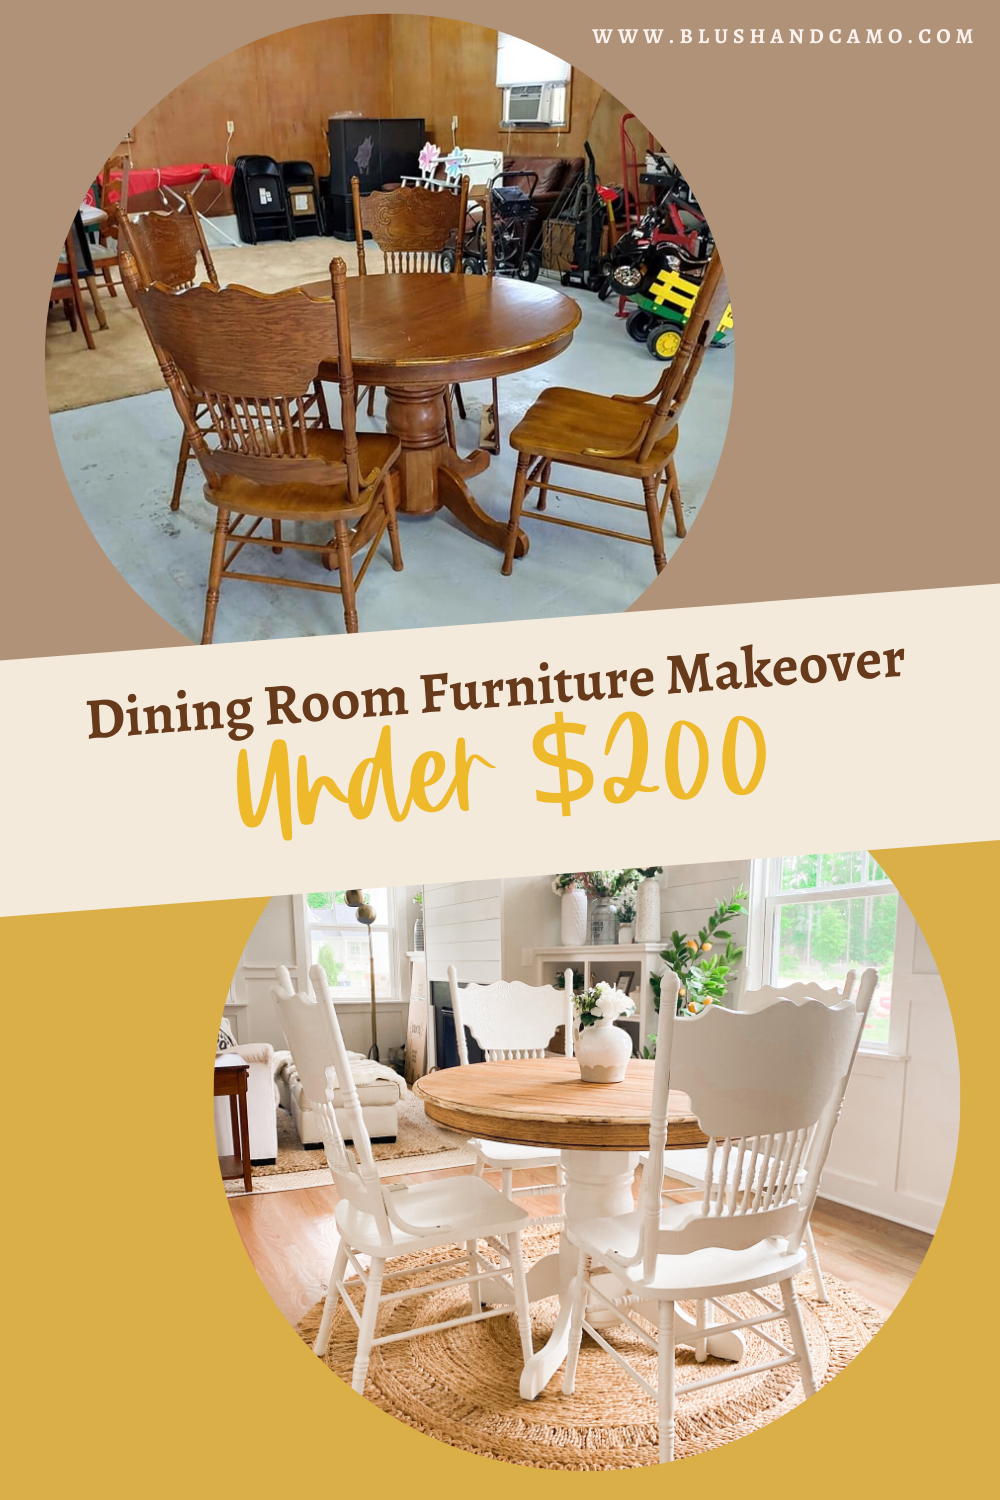 Dining Room Furniture Makeover Under 200 Blush Camo In 2020 Dining Room Furniture Makeover Dining Room Furniture Furniture Makeover